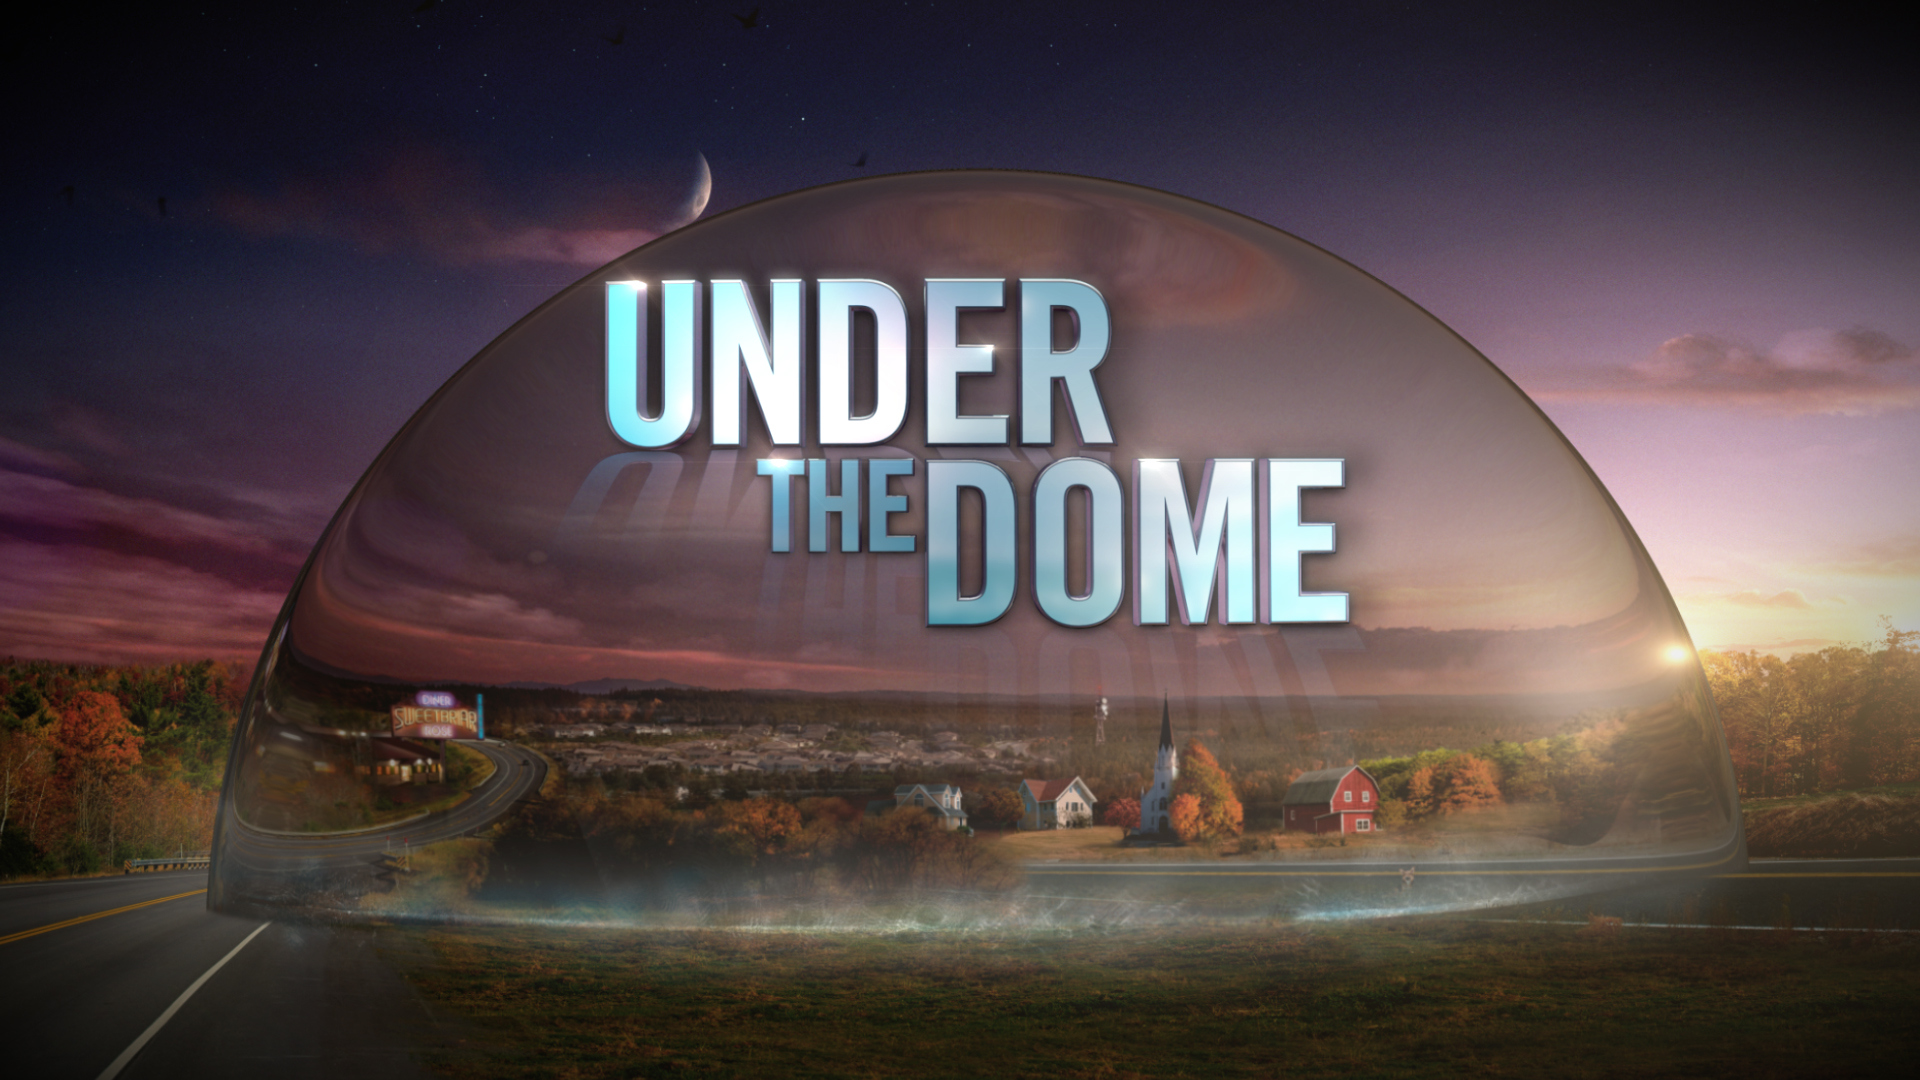 Under_the_dome_logo_9003